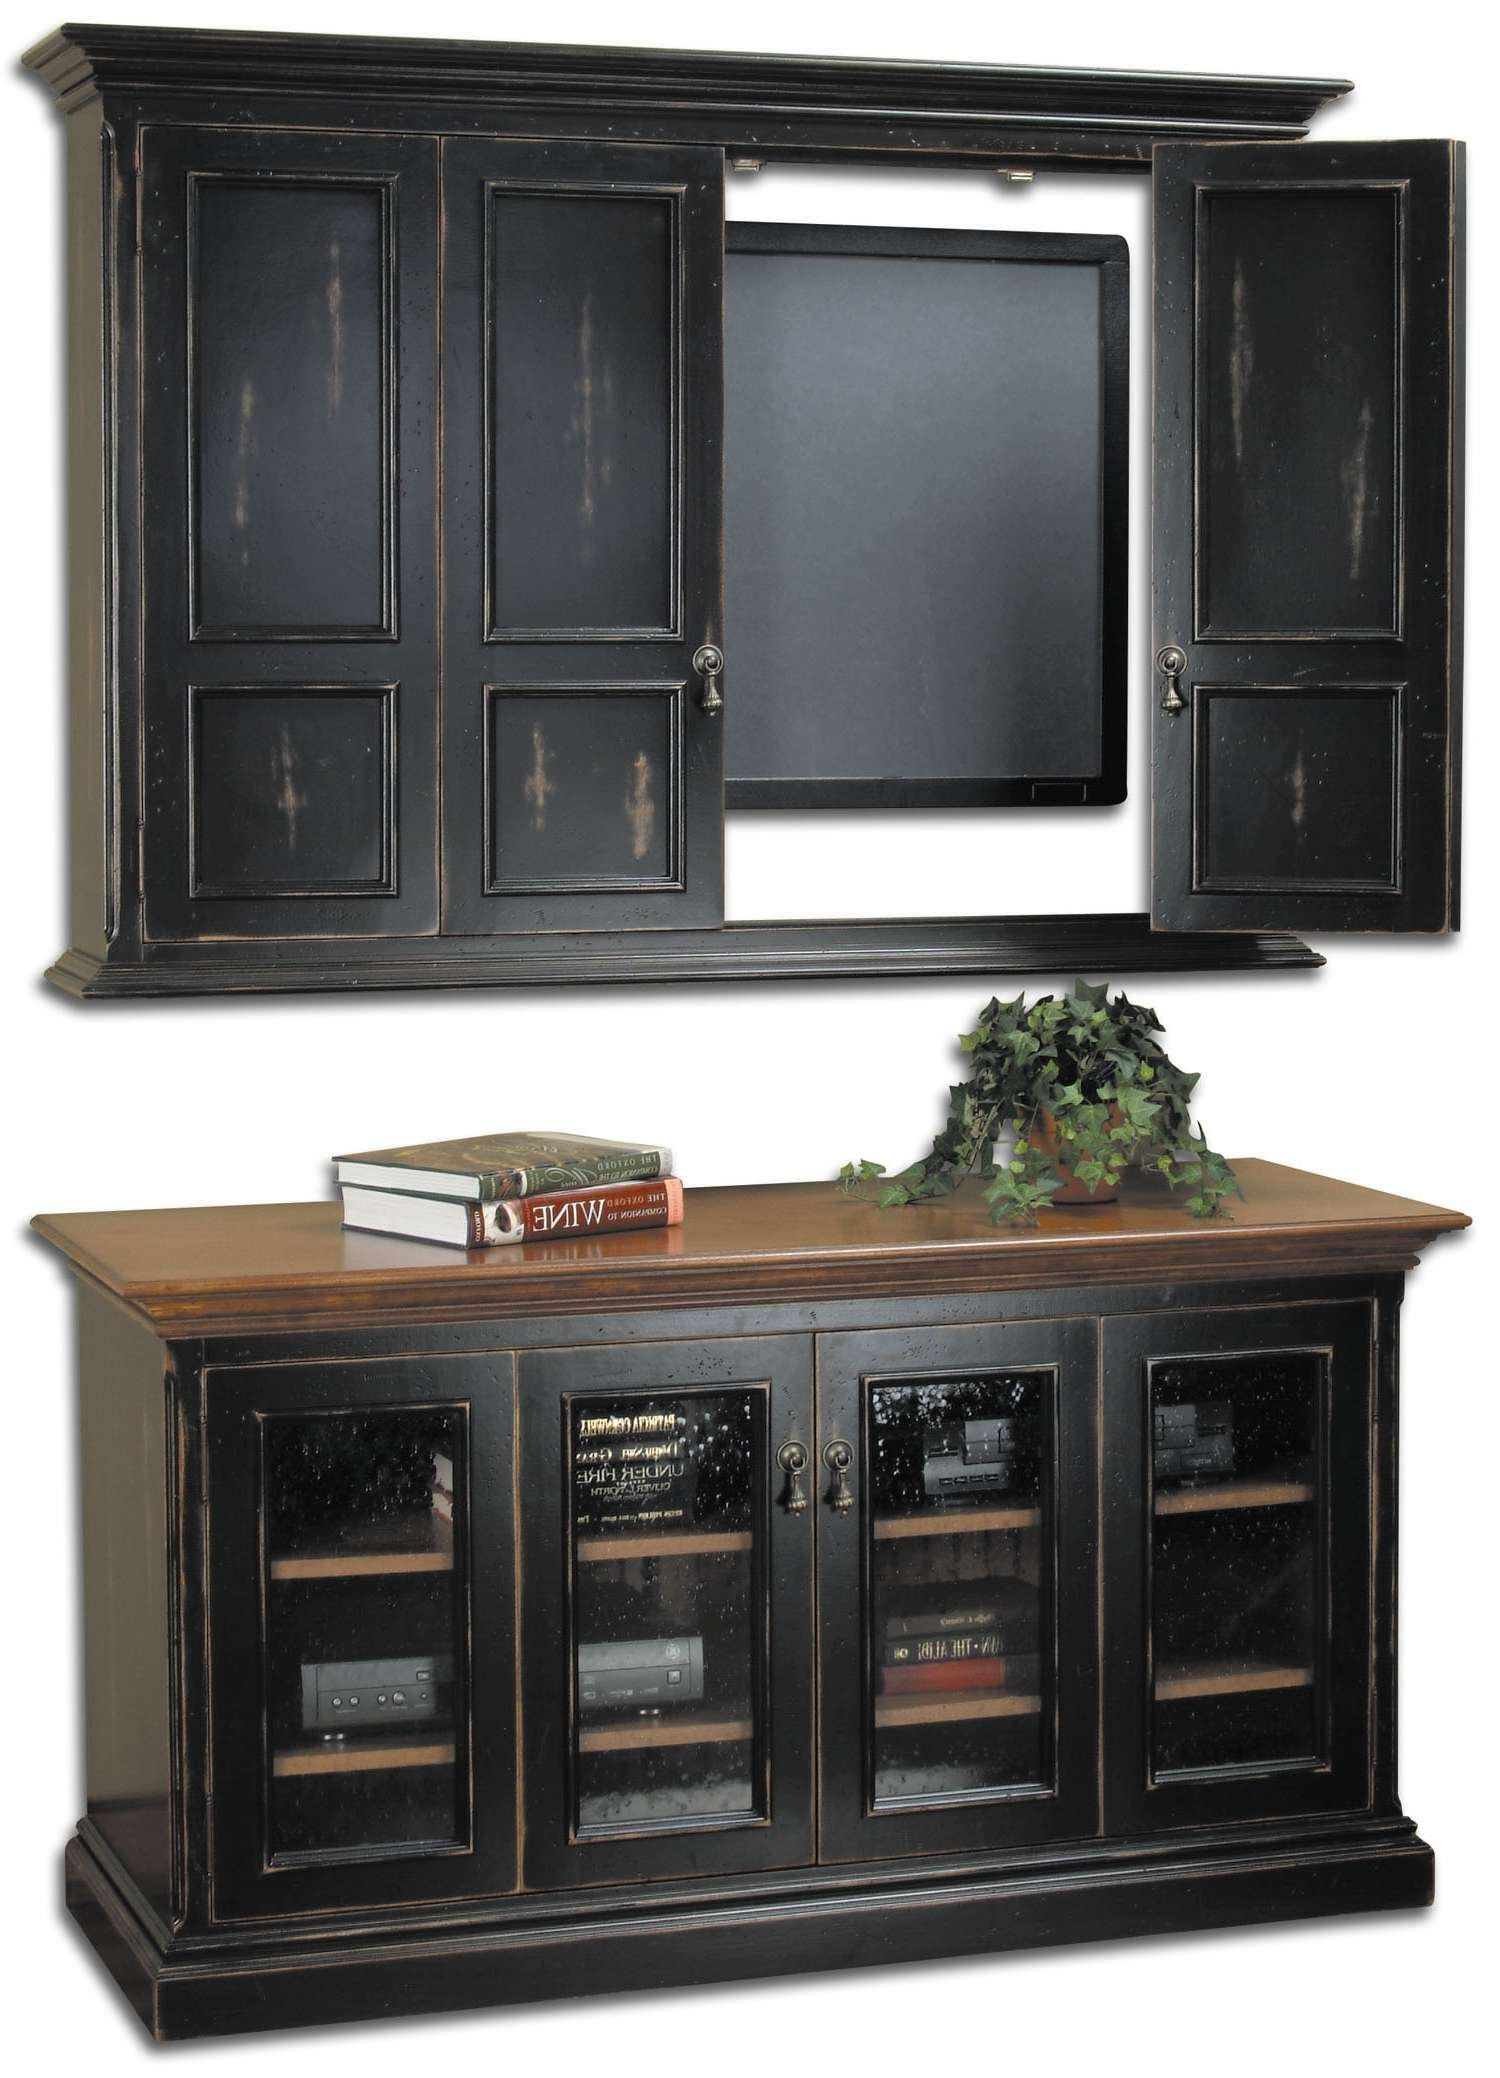 Media Cabinet Withoors To Hide Tv Hidden Wooden Cabinets Storage With Enclosed Tv Cabinets For Flat Screens With Doors (View 14 of 20)